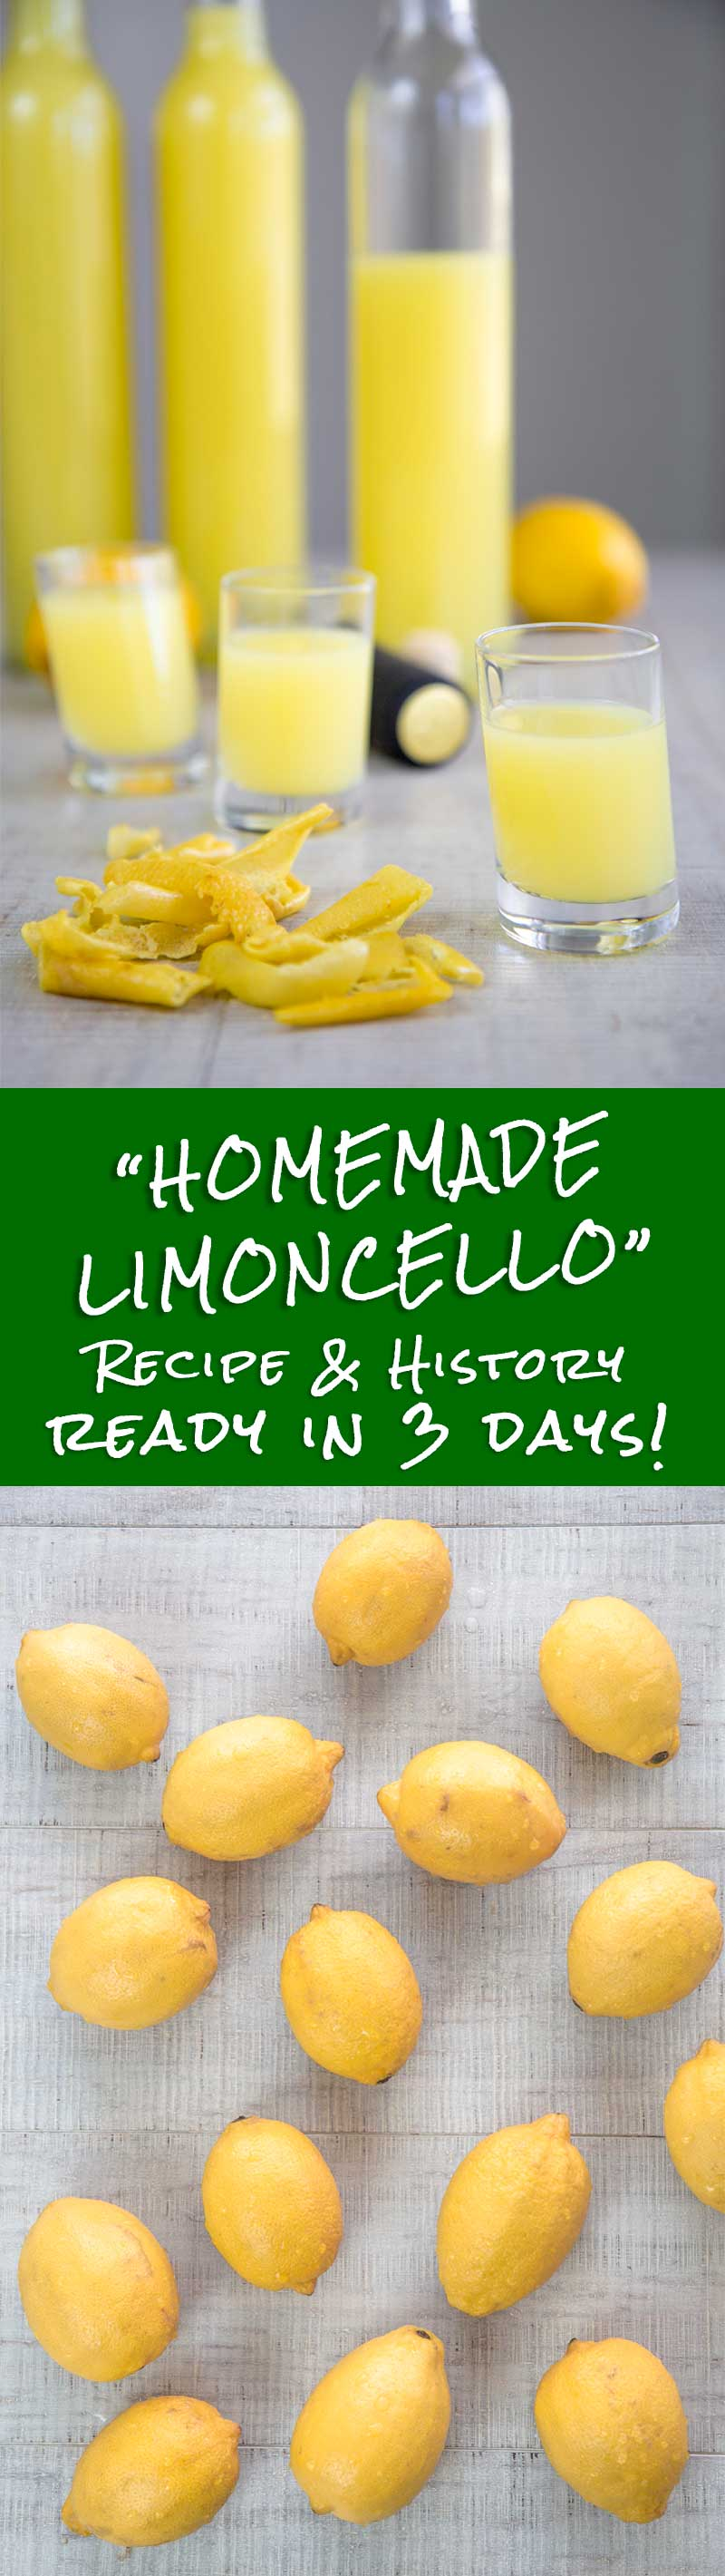 HOMEMADE LIMONCELLO ITALIAN RECIPE AND HISTORY - ready in 3 days!